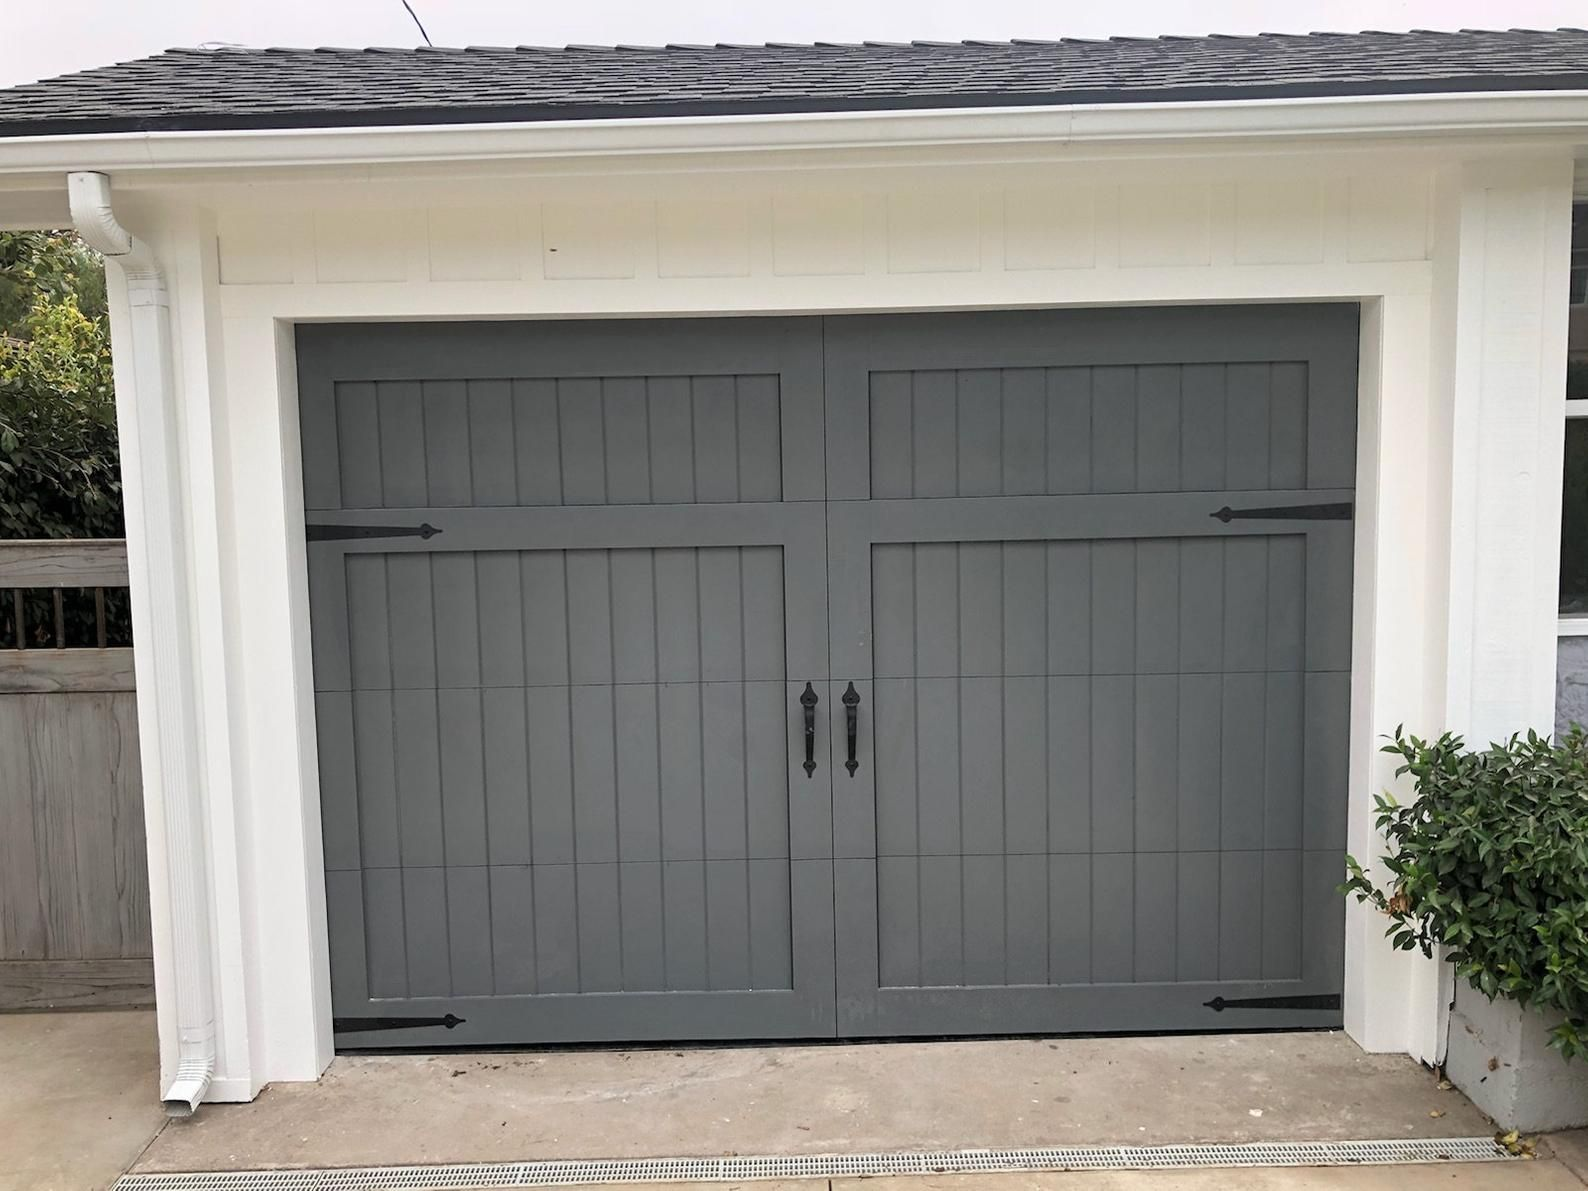 Solid Wooden Garage Door Get Custom Design Or Size Wooden Garage Doors Garage Door Styles Wooden Garage